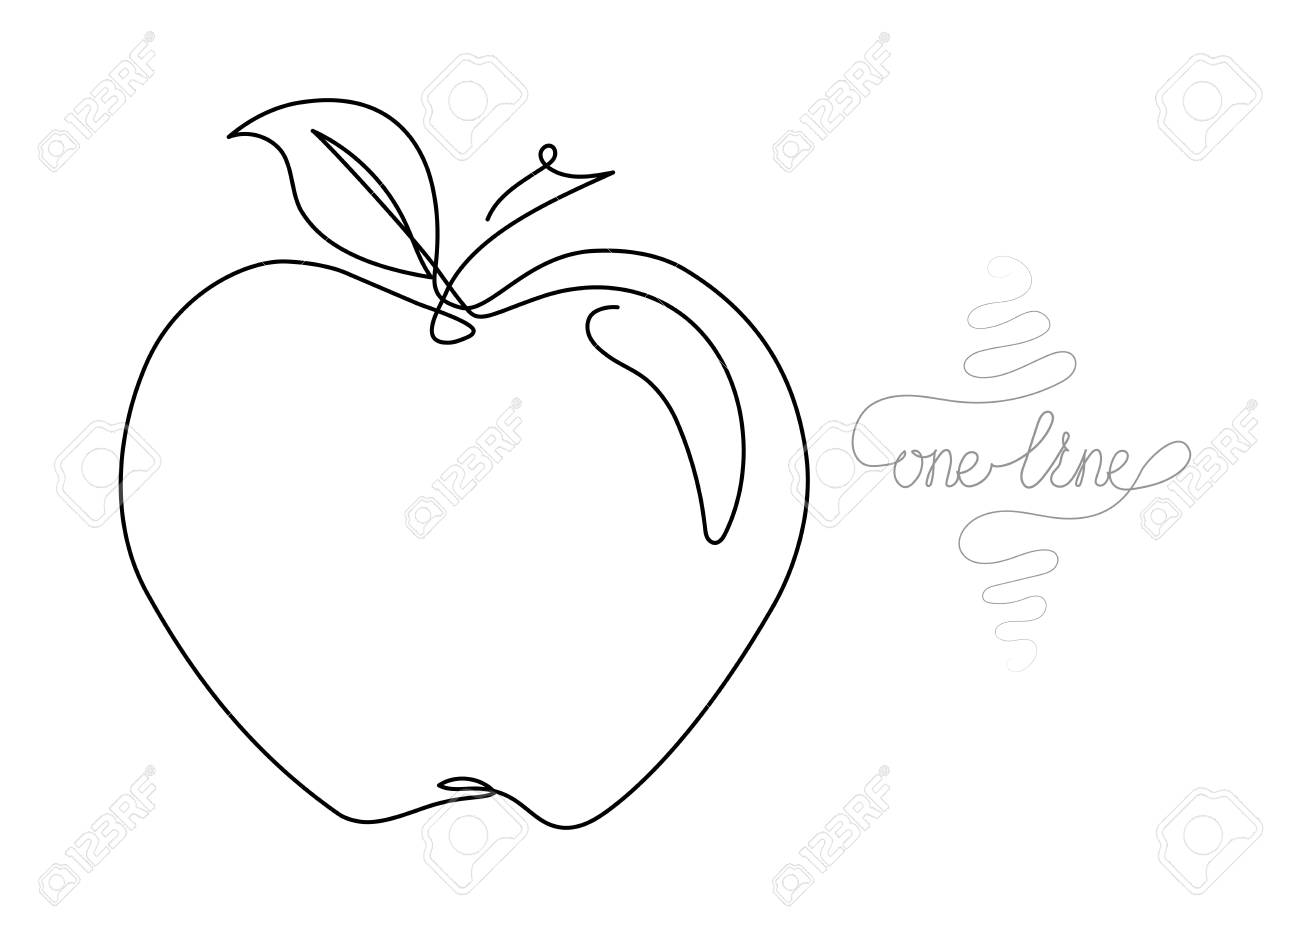 Single Line Drawing Continuous One Line Art Apple Fruit Hand Royalty Free Cliparts Vectors And Stock Illustration Image 115932423